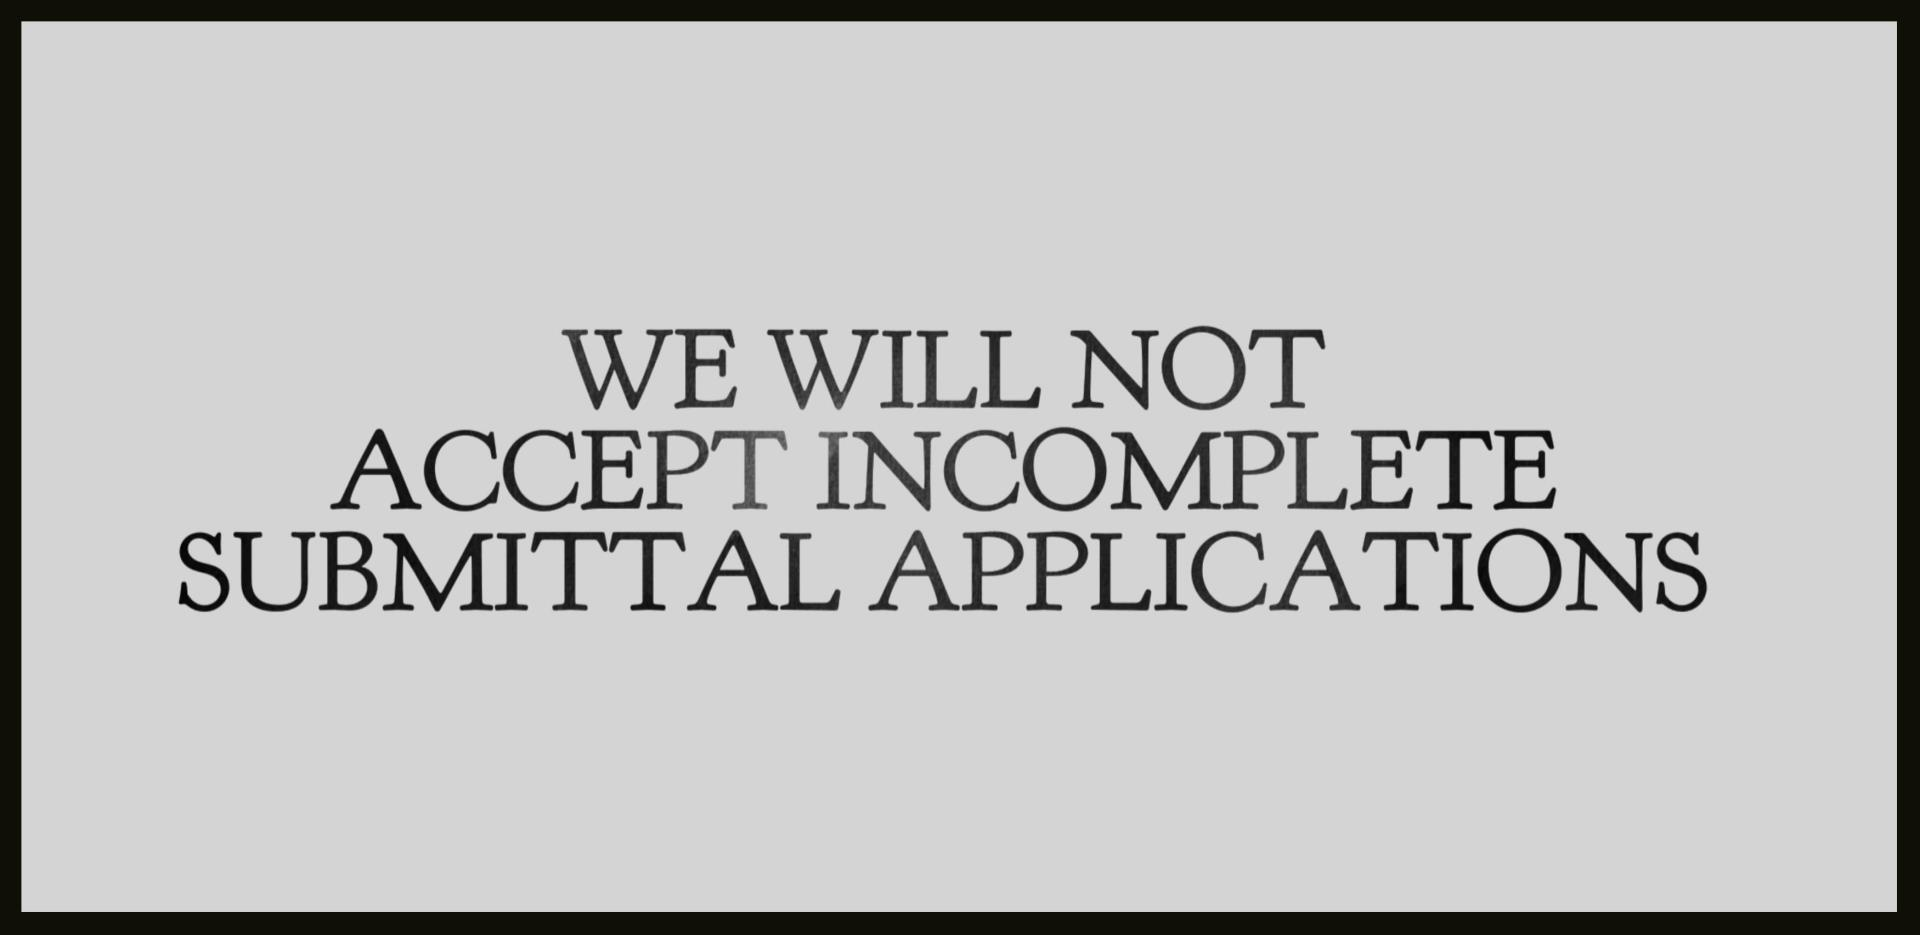 WE WILL NOT ACCEPT INCOMPLETE SUBMITTAL APPLICATIONS